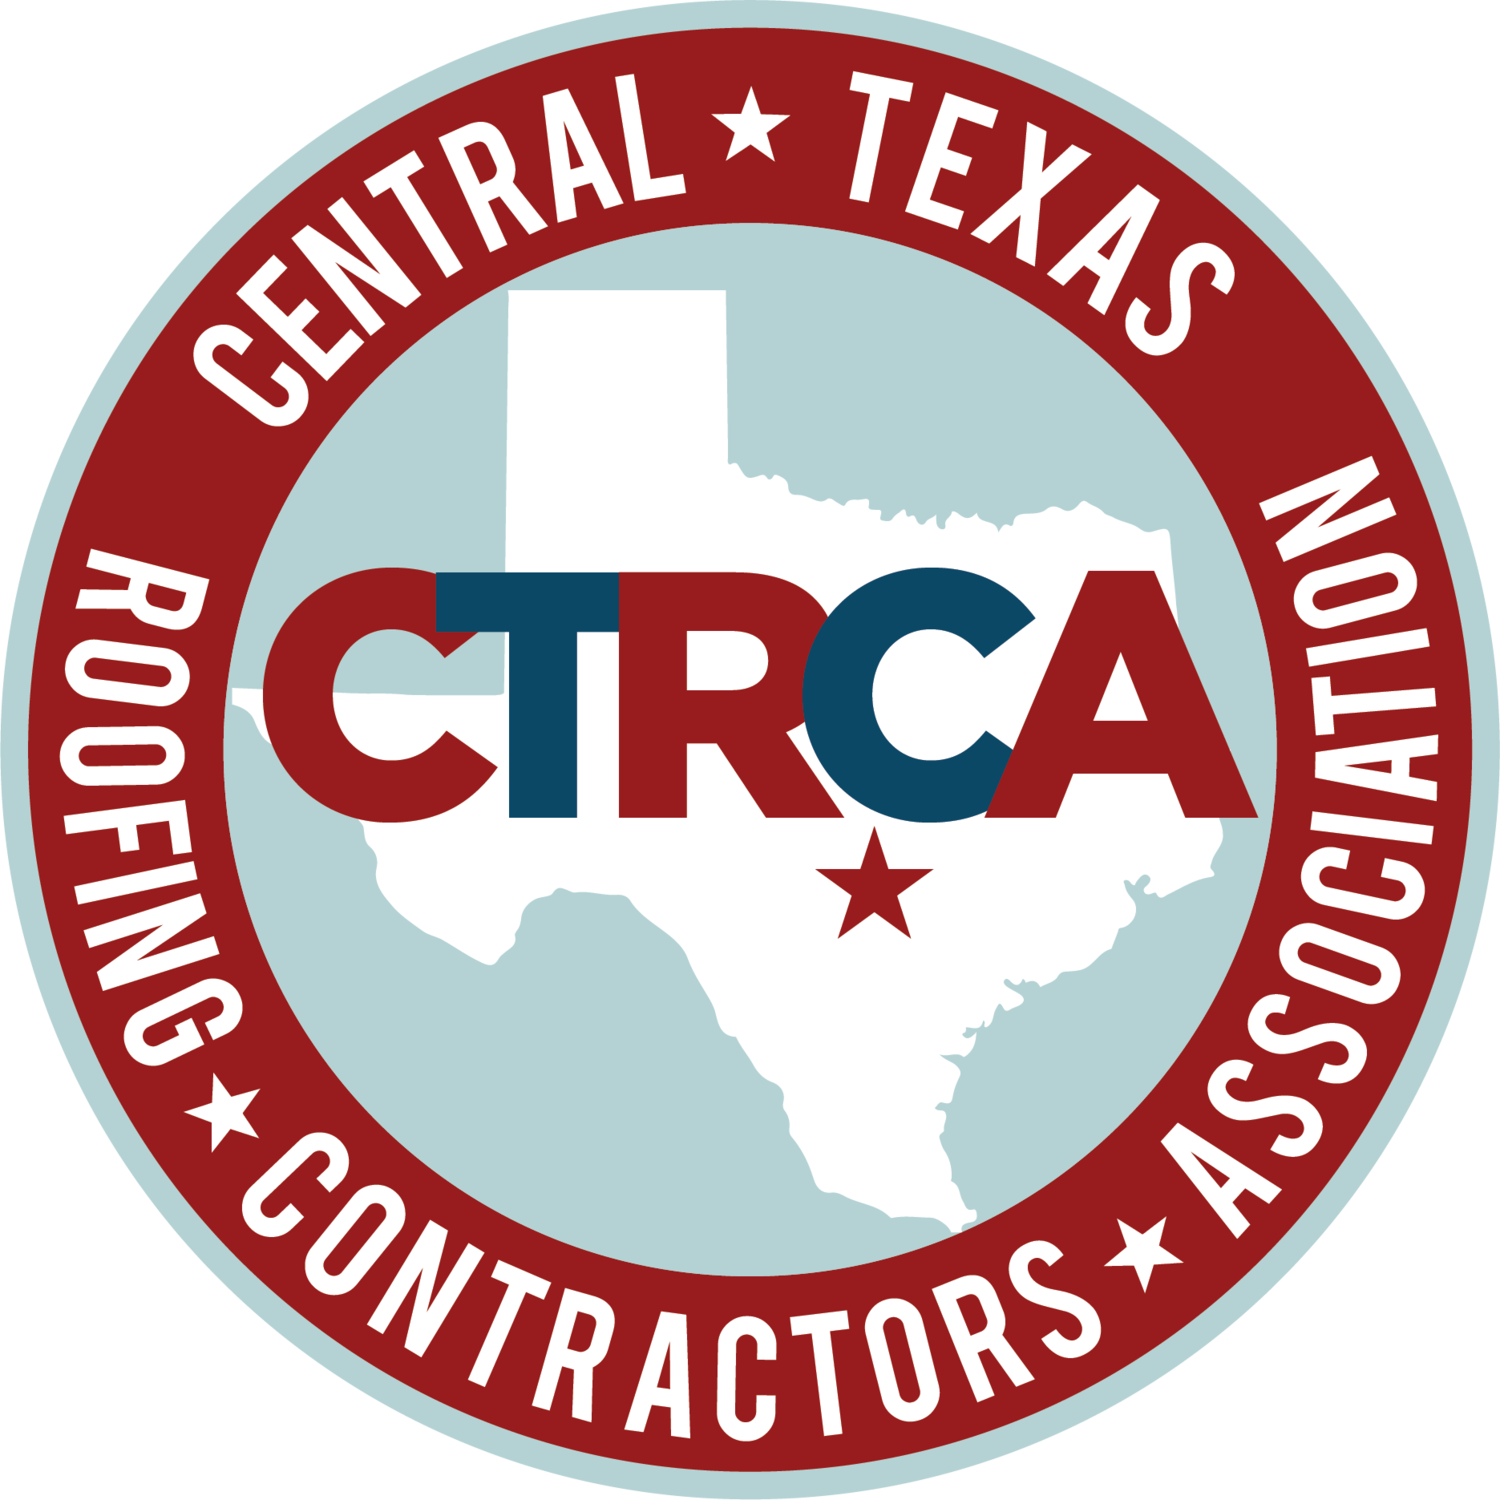 Central Texas Roofing Contractor Association